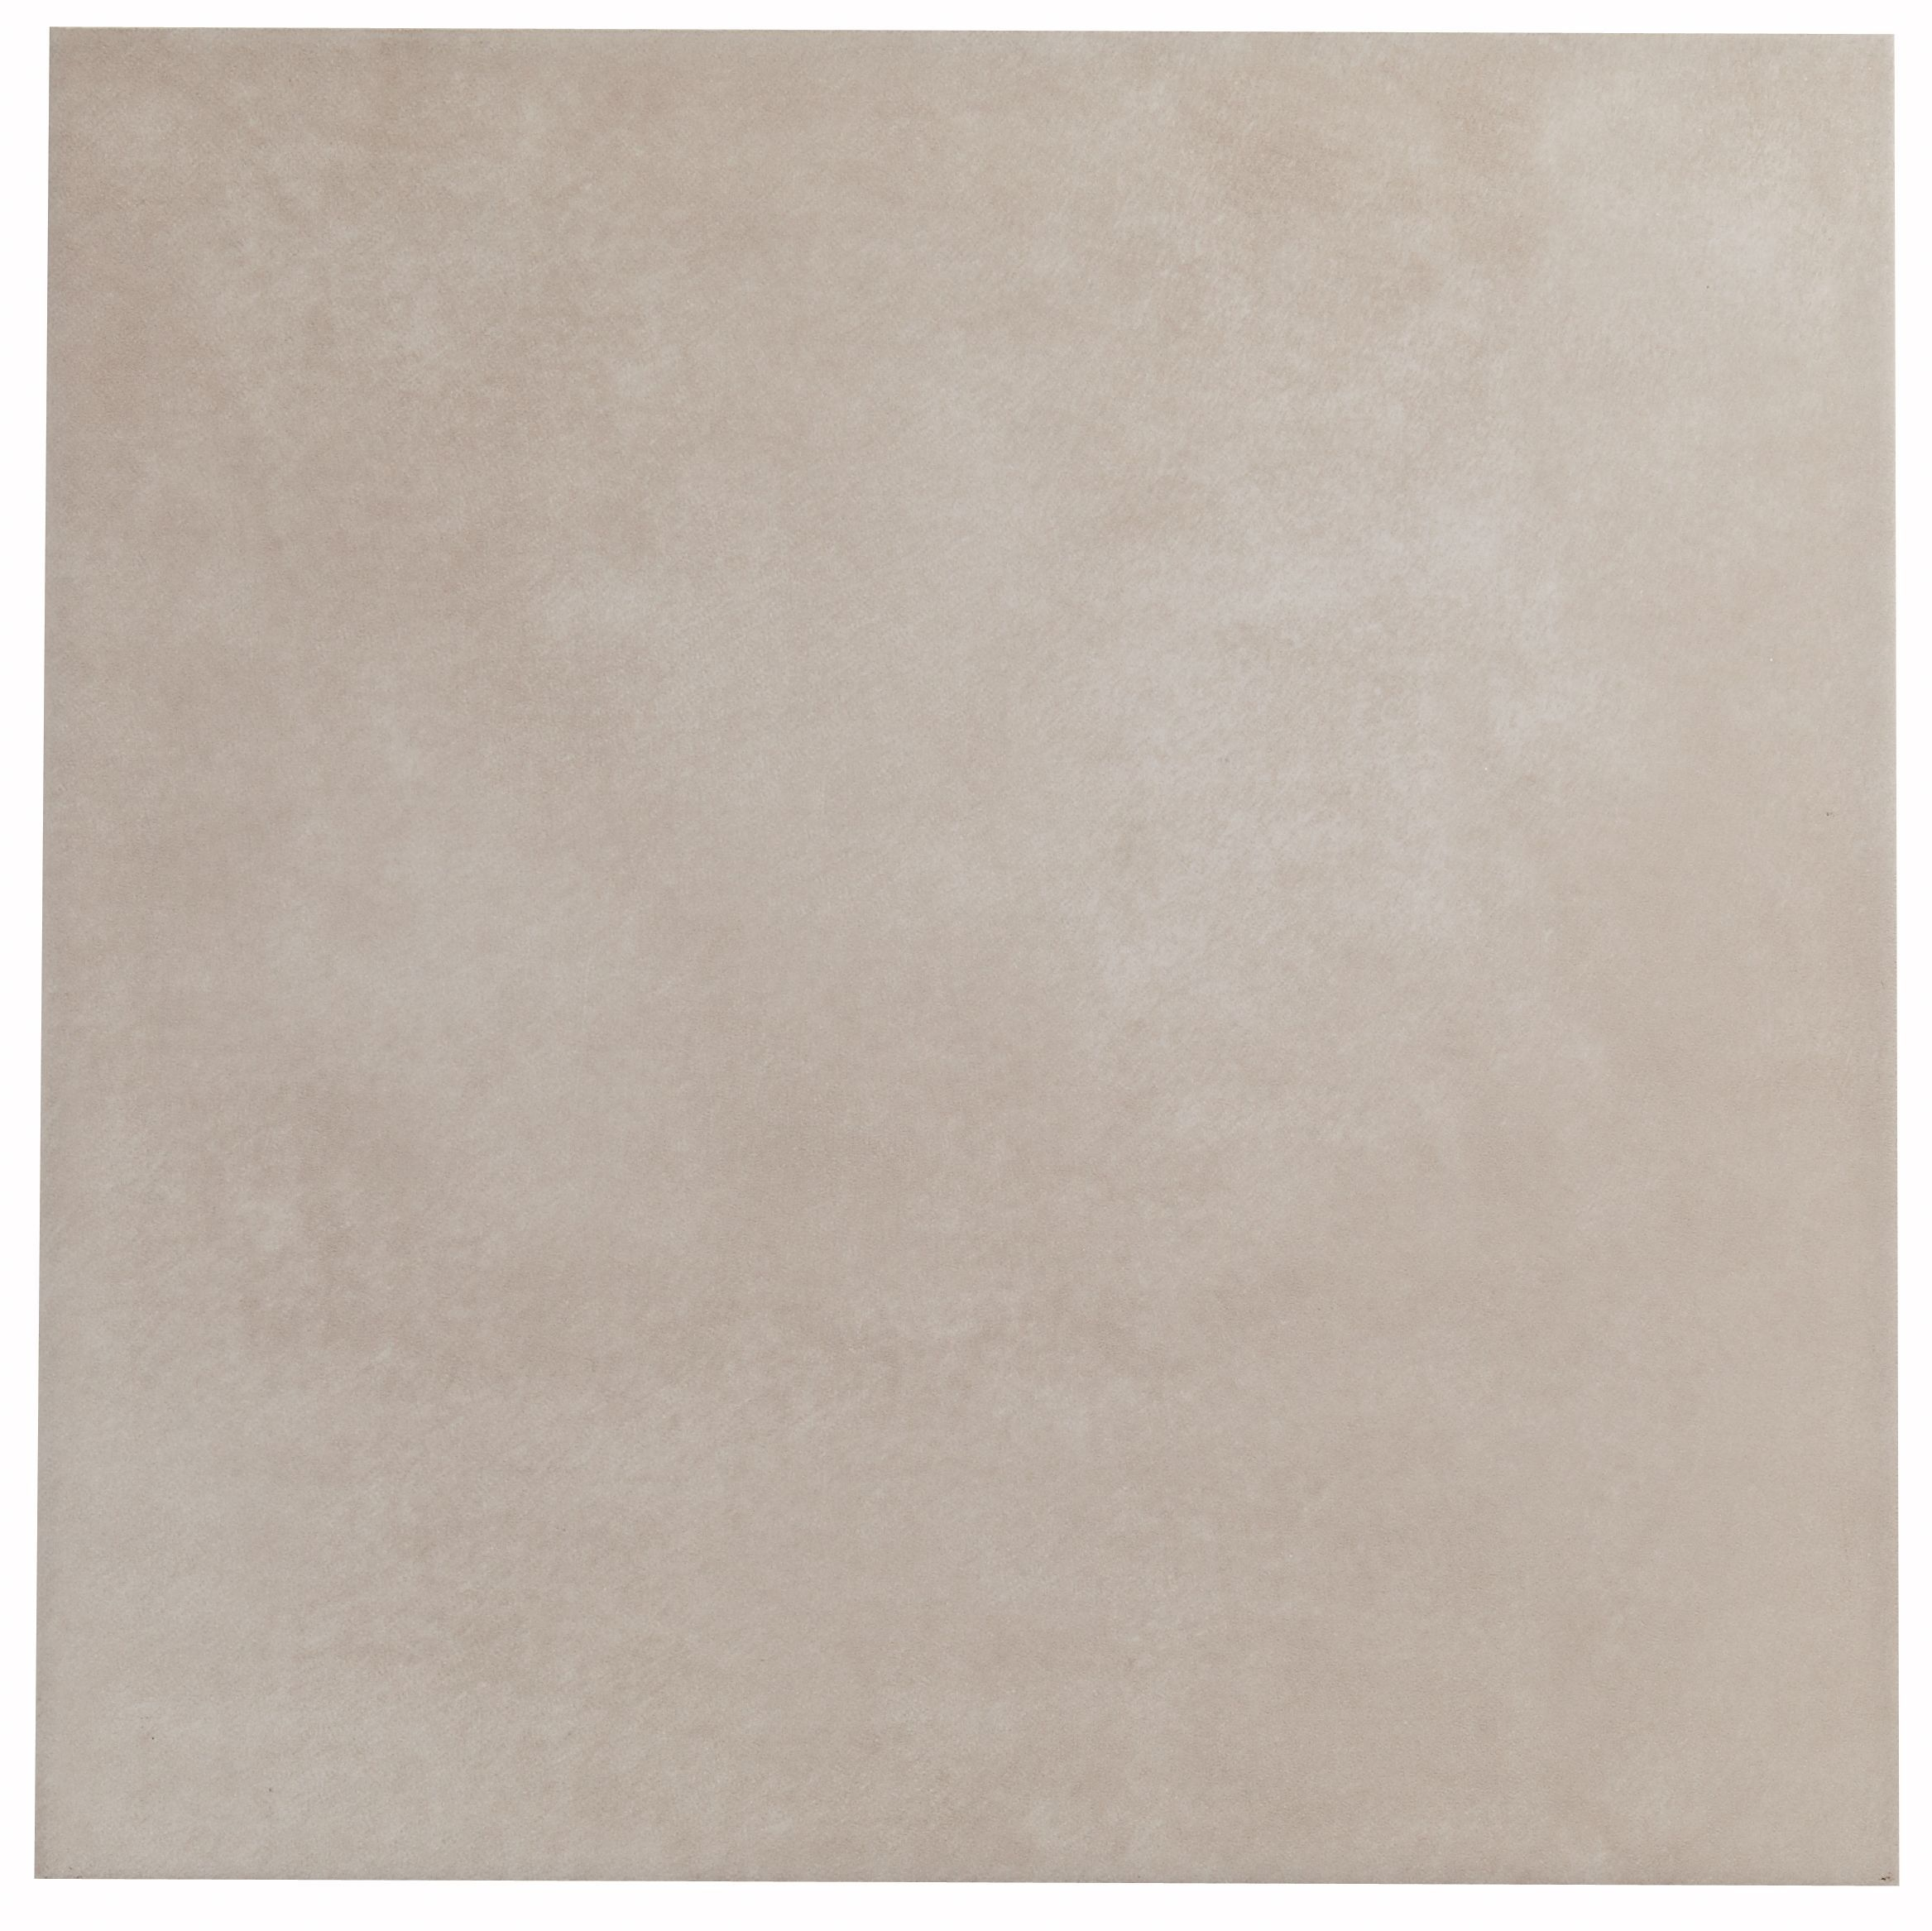 B And Q Jazz Stone Ceramic Floor And Shower Wall Tile 10 Per Sq M